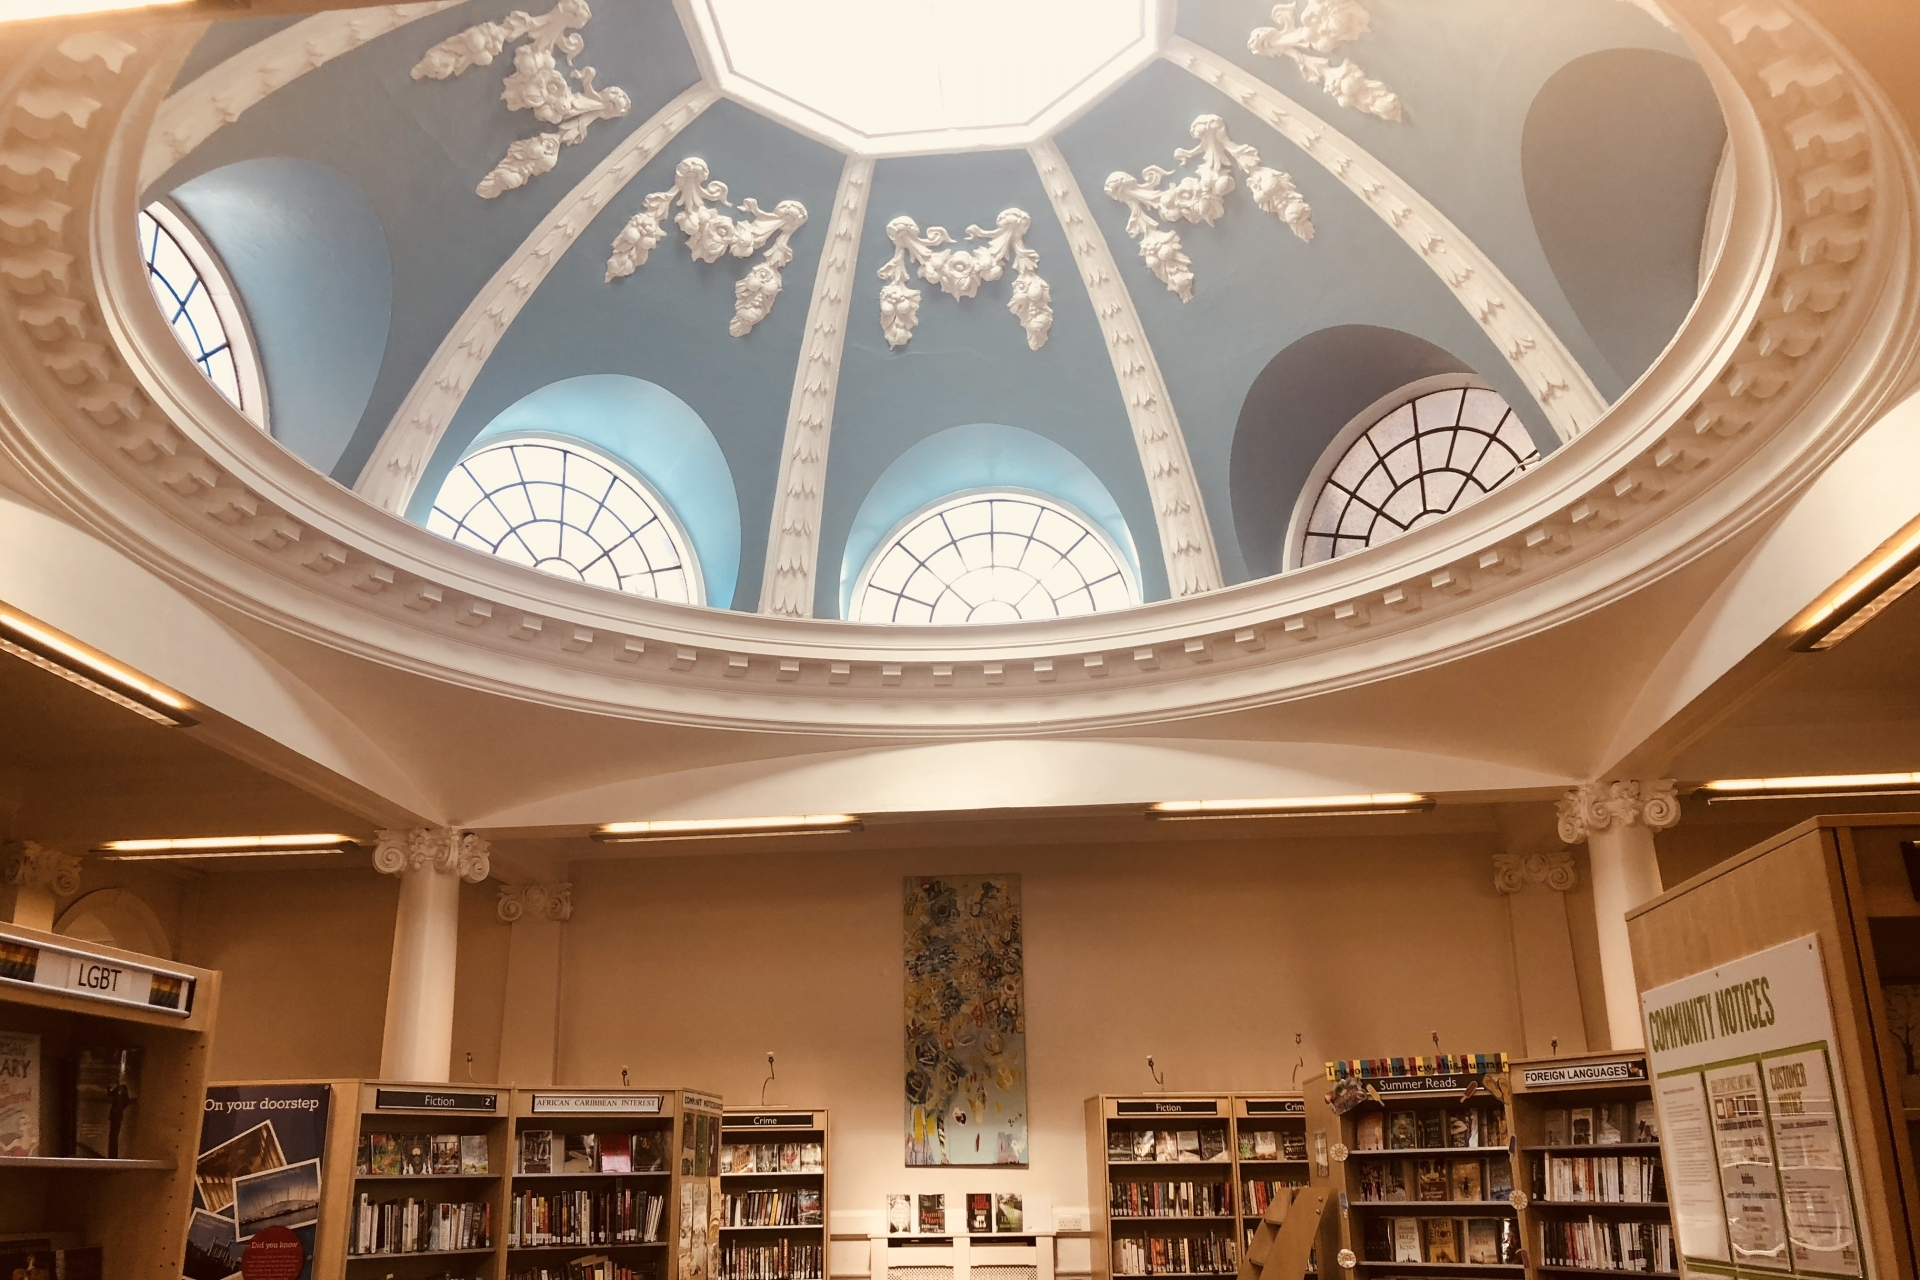 LoveReading Library of the Month #1: West Greenwich Library